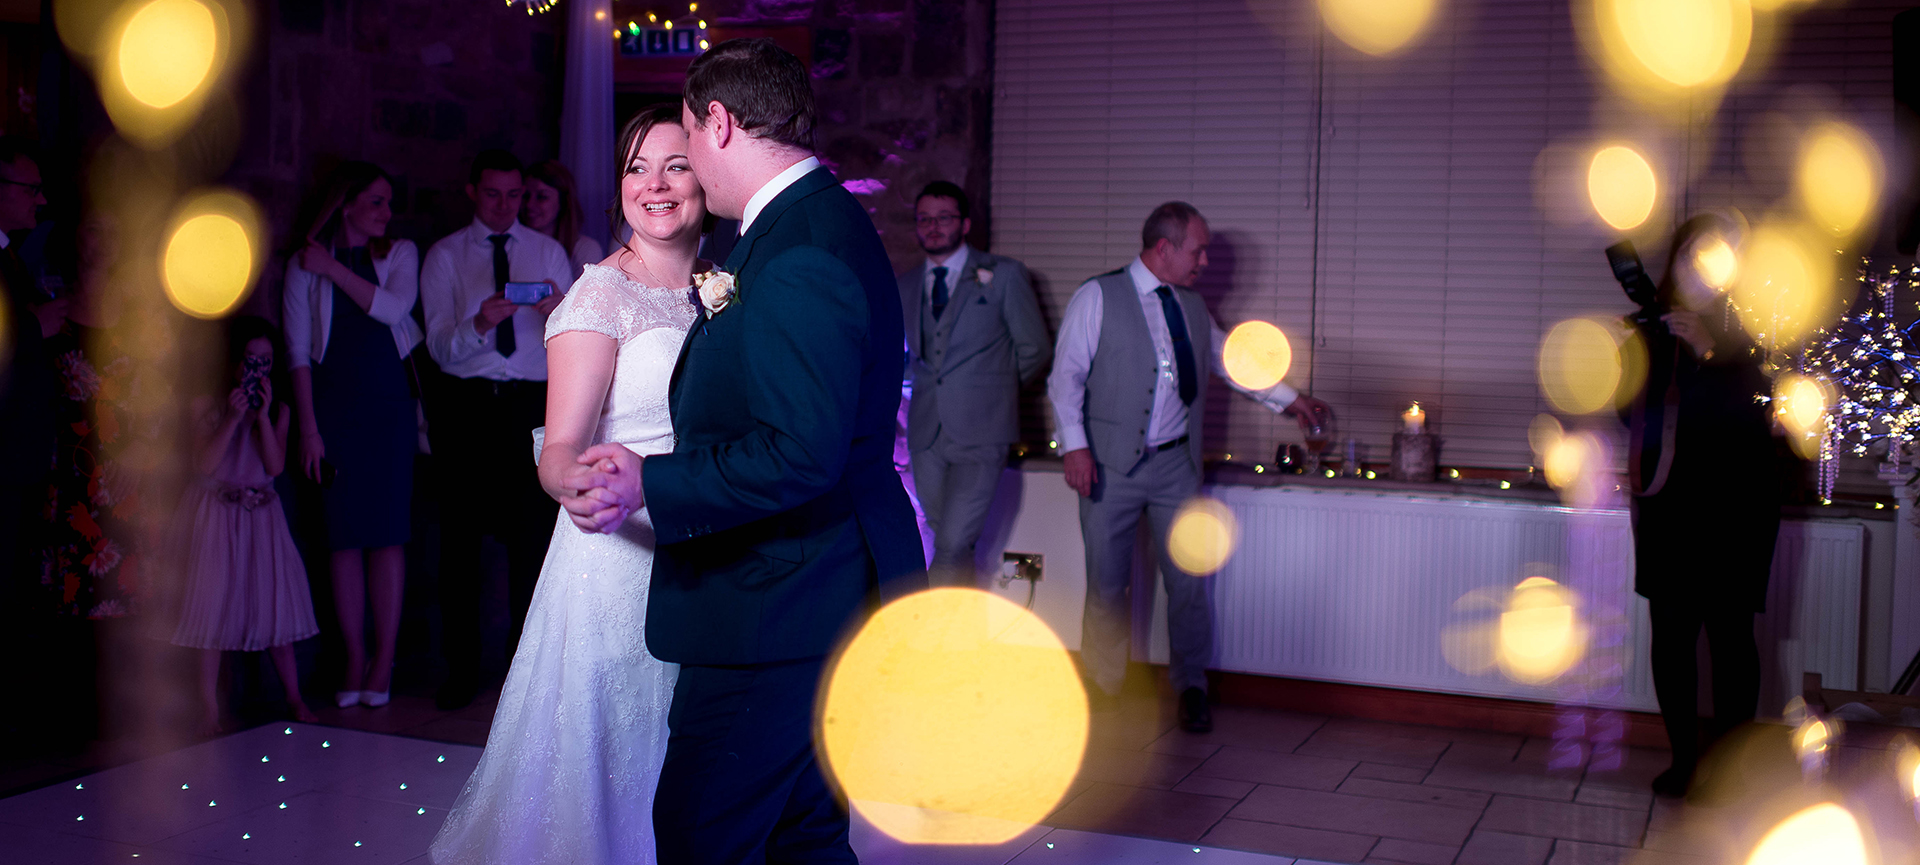 Bride and groom share first dance at Beeston manor wedding